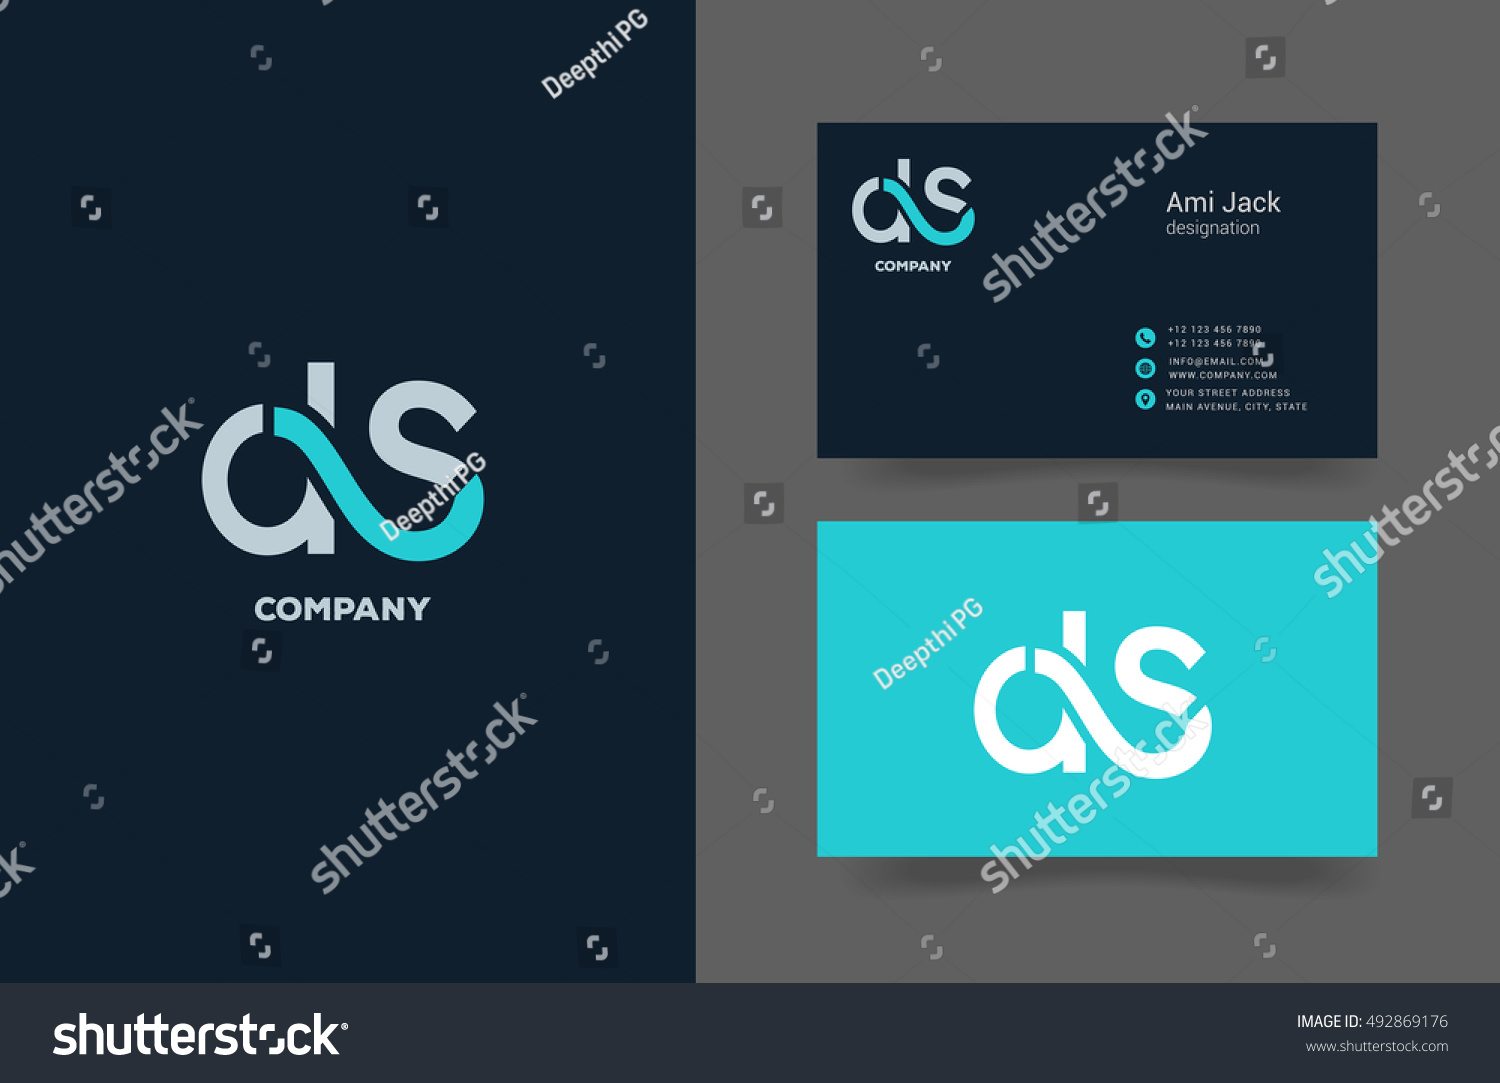 D S Letter Logo Business Card Stock Vector HD (Royalty Free ...